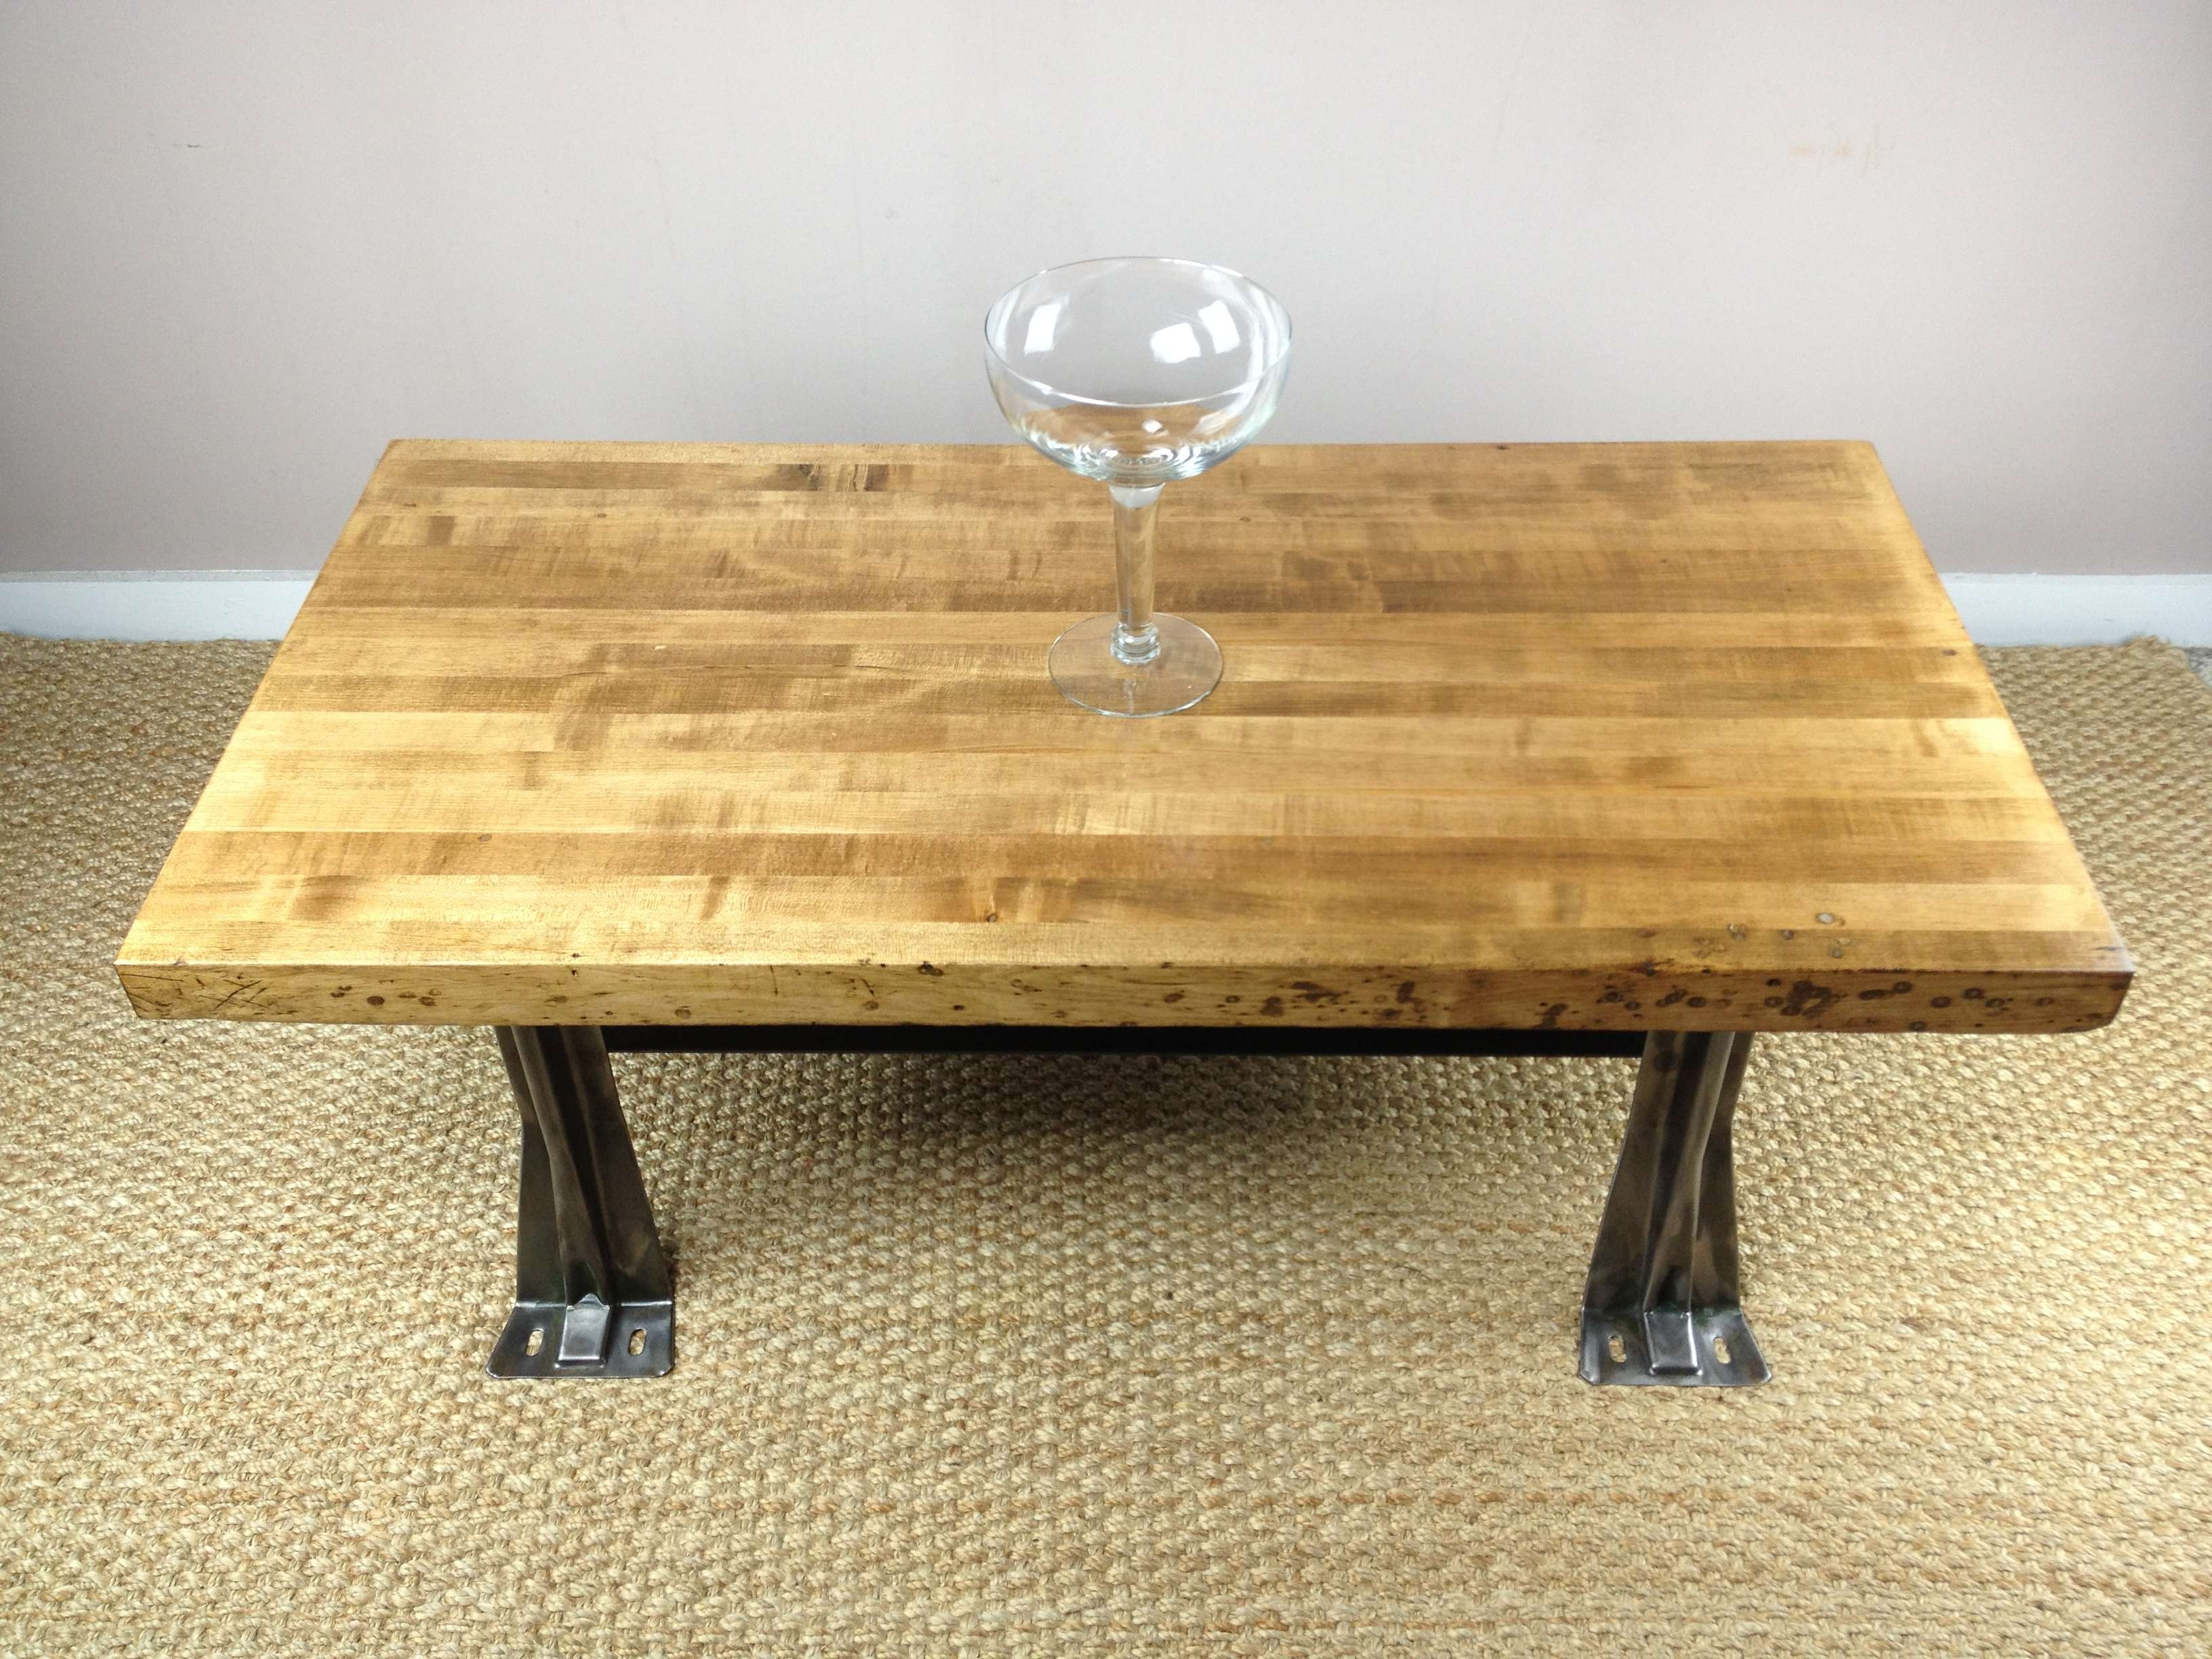 Current Large Square Low Coffee Tables Regarding Diy Custom Square Low Coffee Table Using Reclaimed Wood Top And (View 7 of 20)